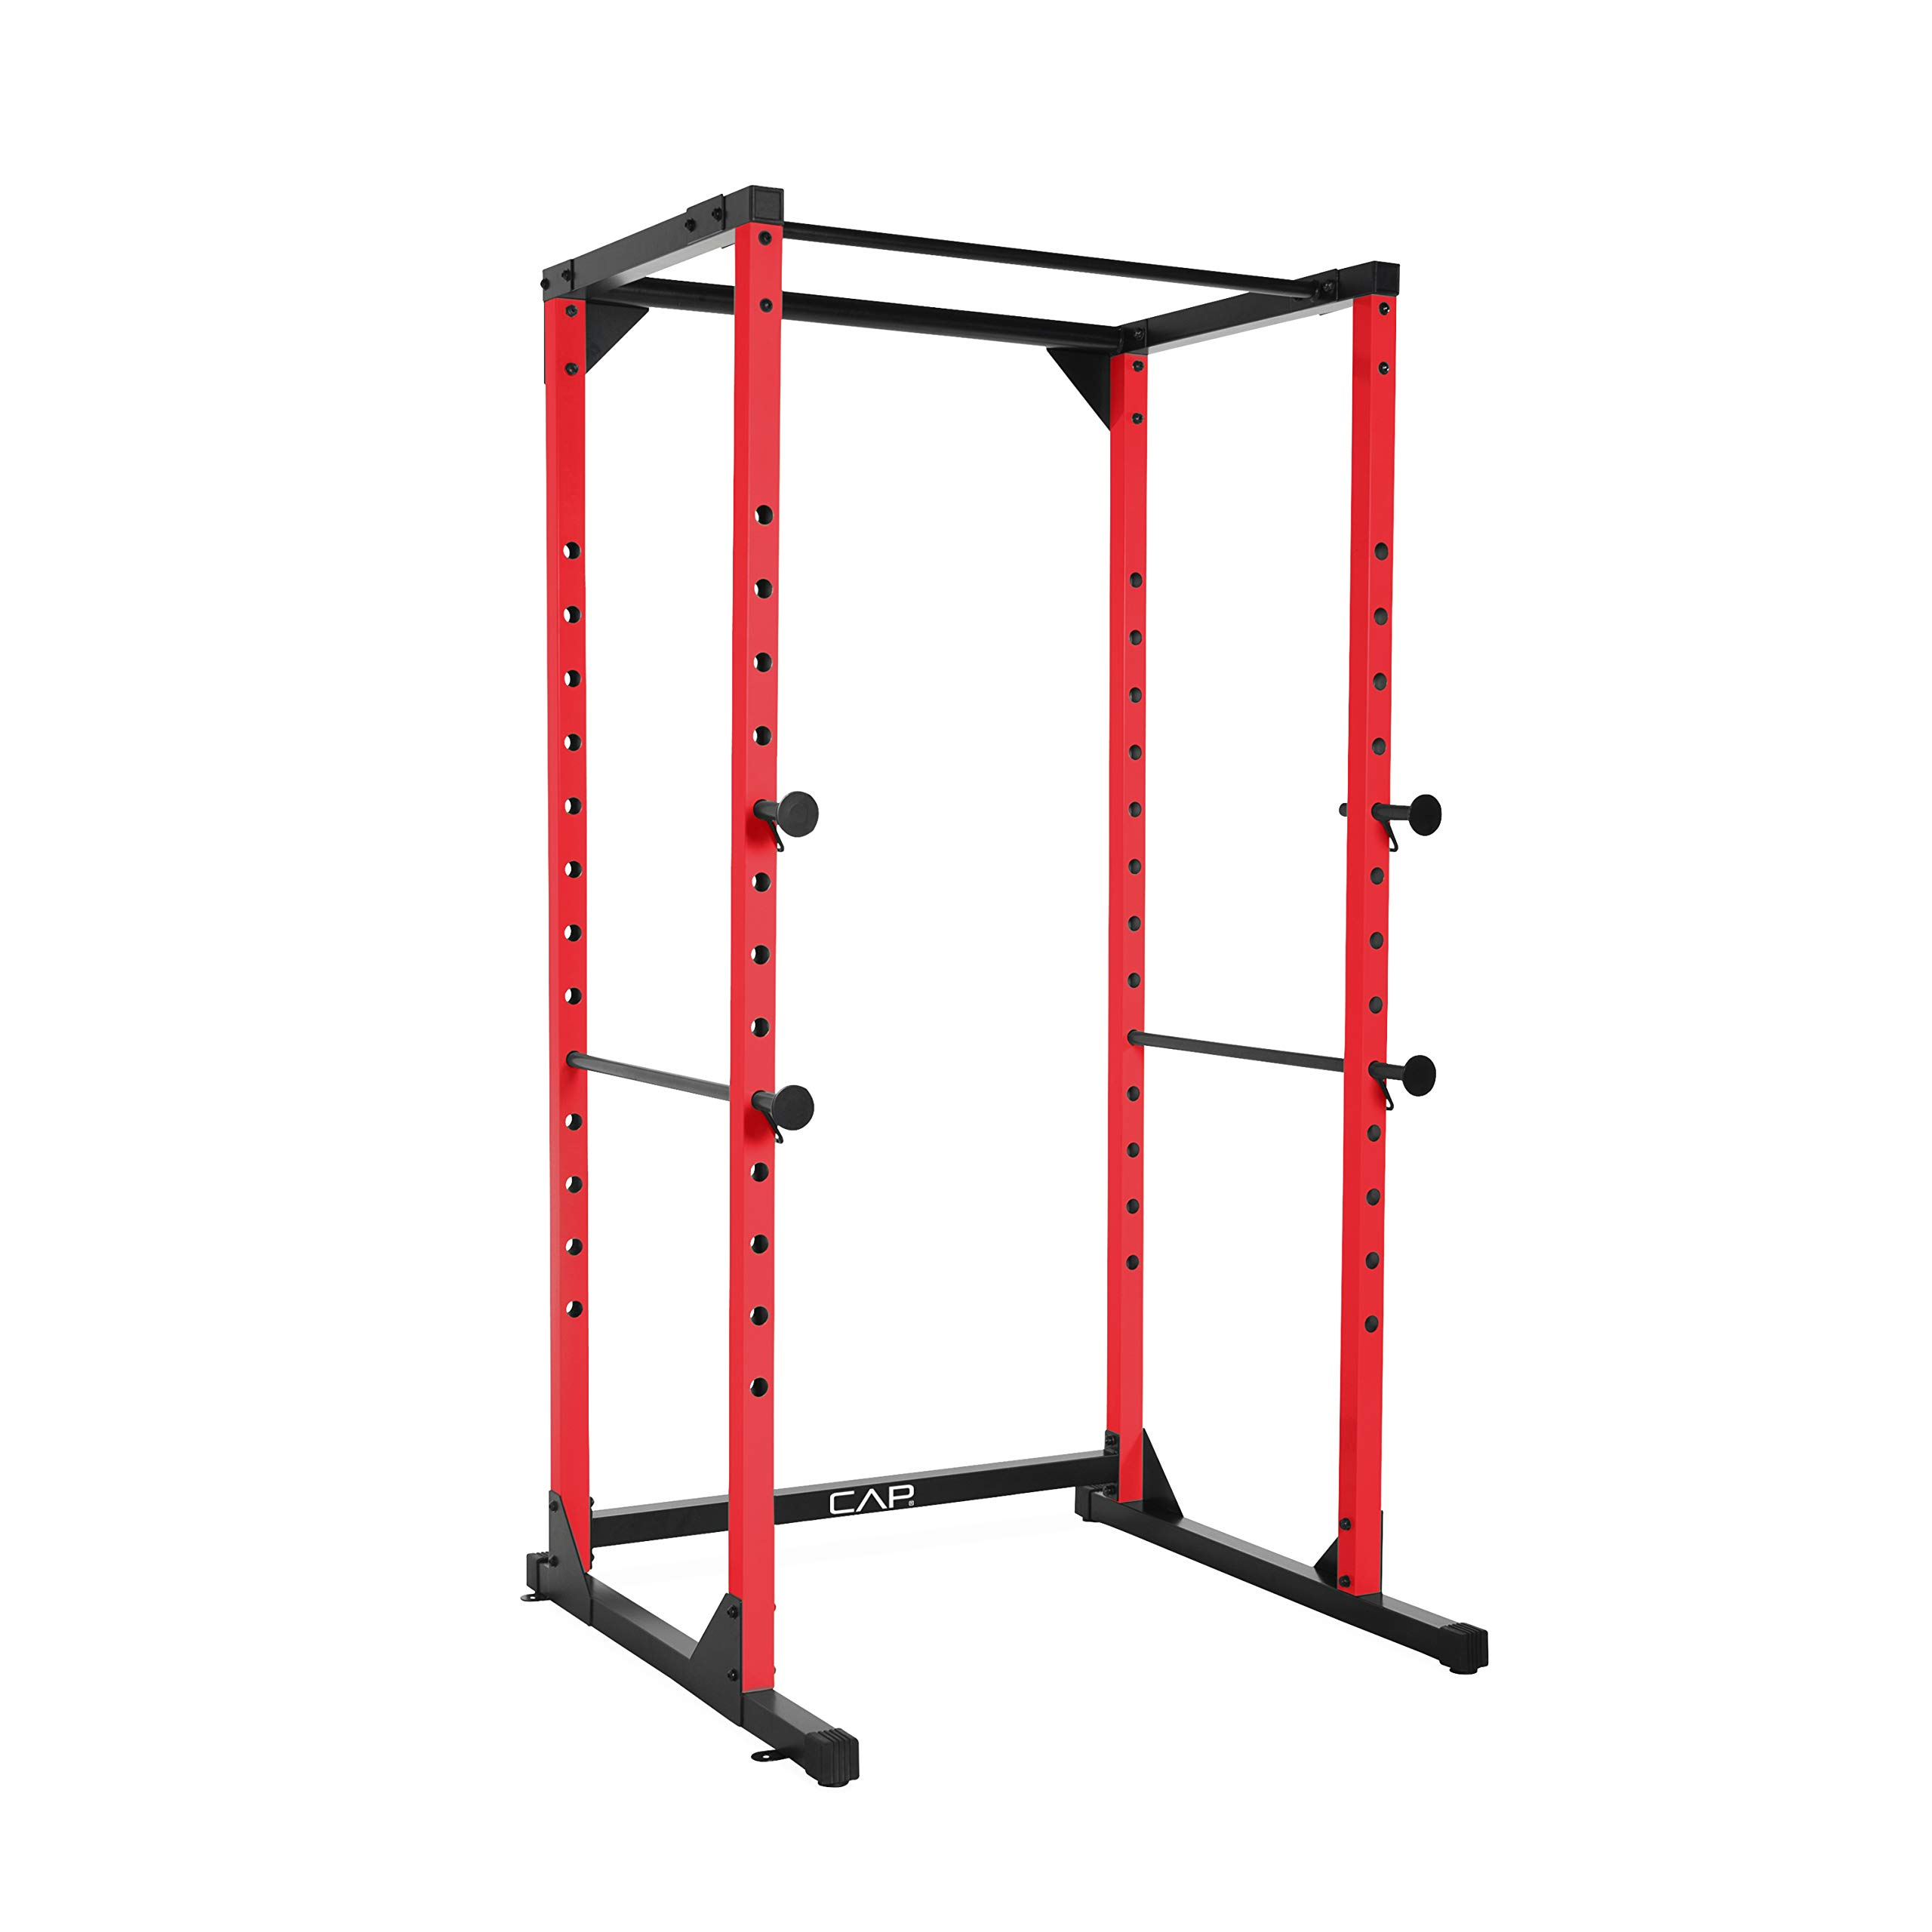 CAP Barbell Full Cage Power Rack, 7-Foot, Red